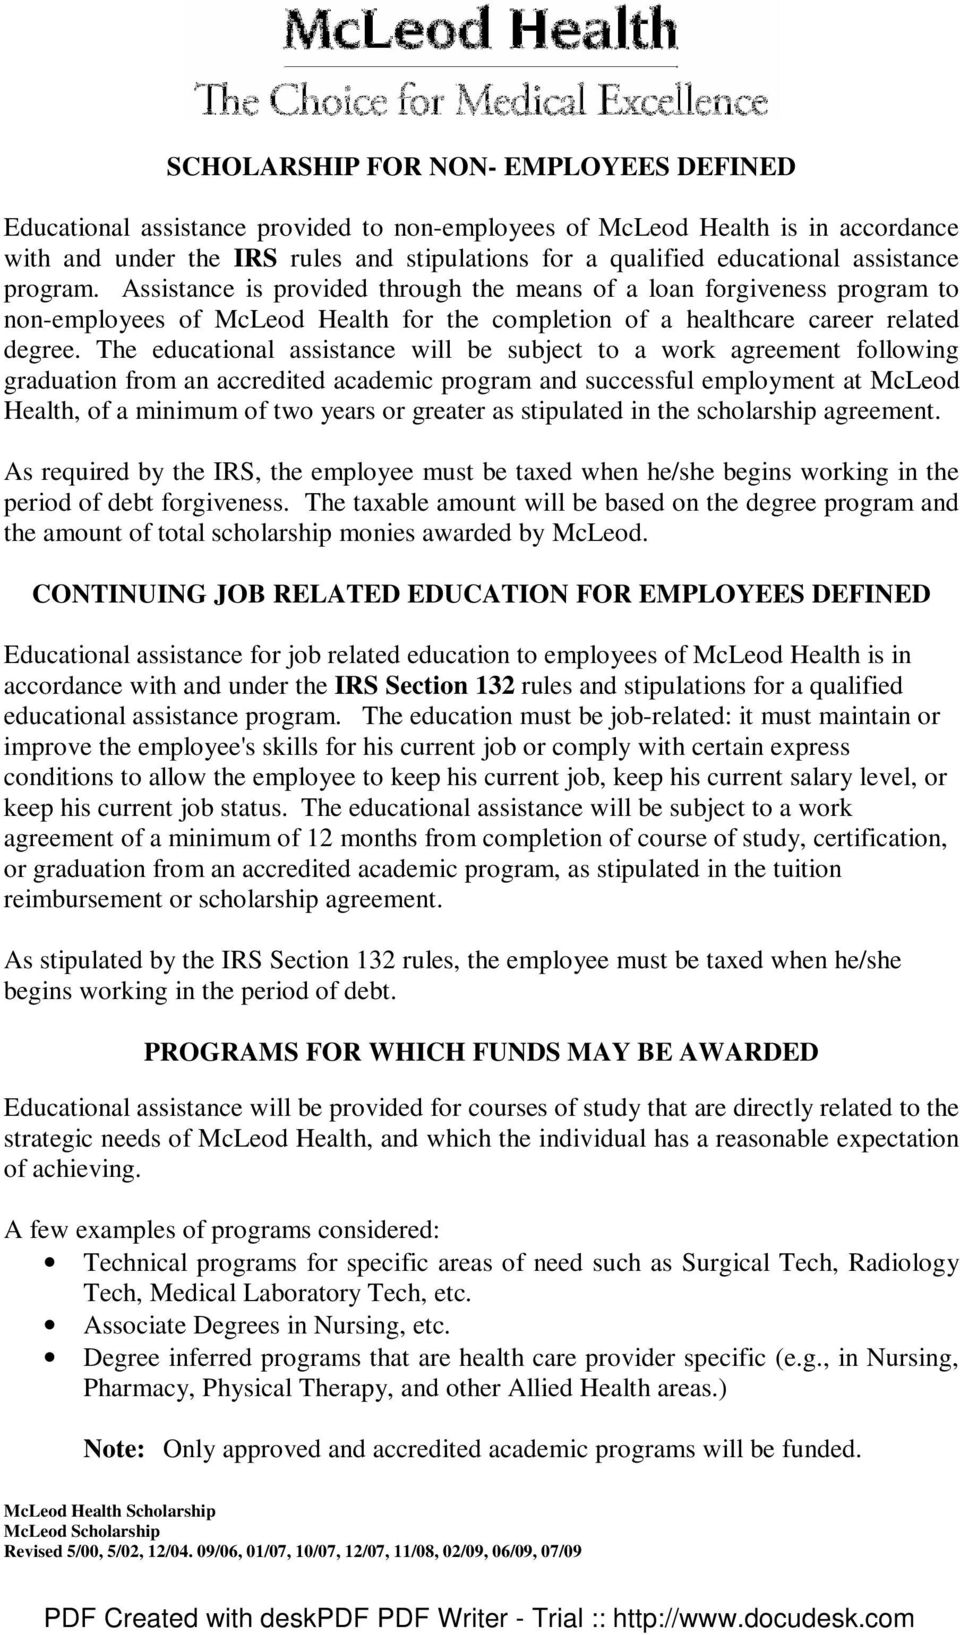 The educational assistance will be subject to a work agreement following graduation from an accredited academic program and successful employment at McLeod Health, of a minimum of two years or